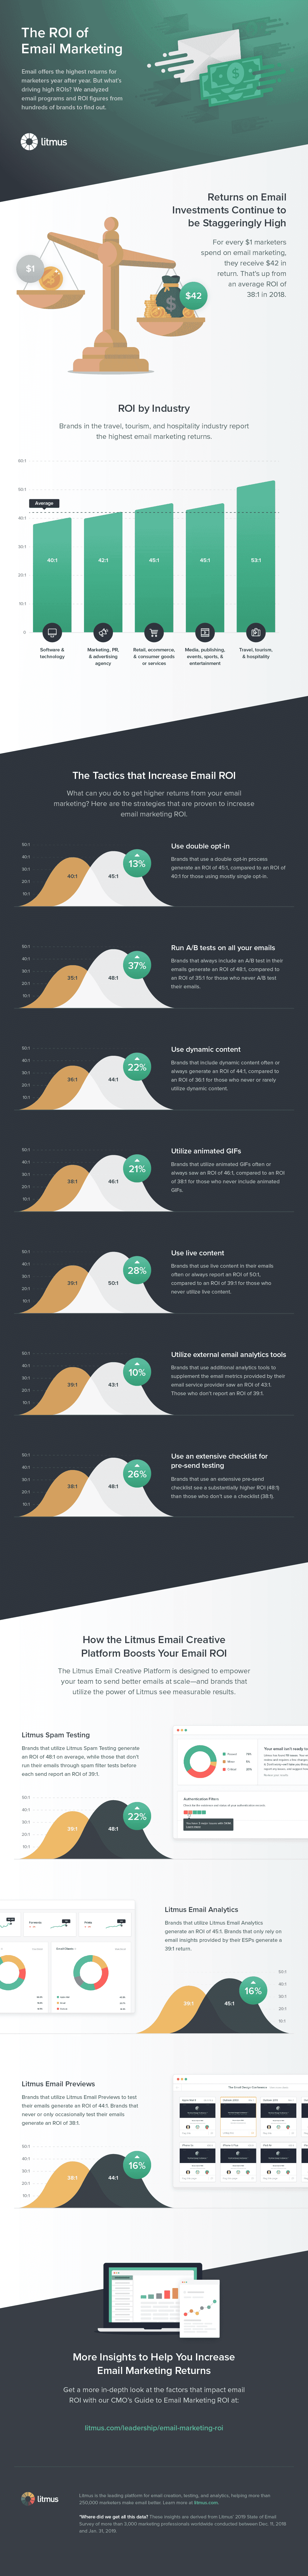 The ROI of Email Marketing - Building your first email list - Infographic by Litmus